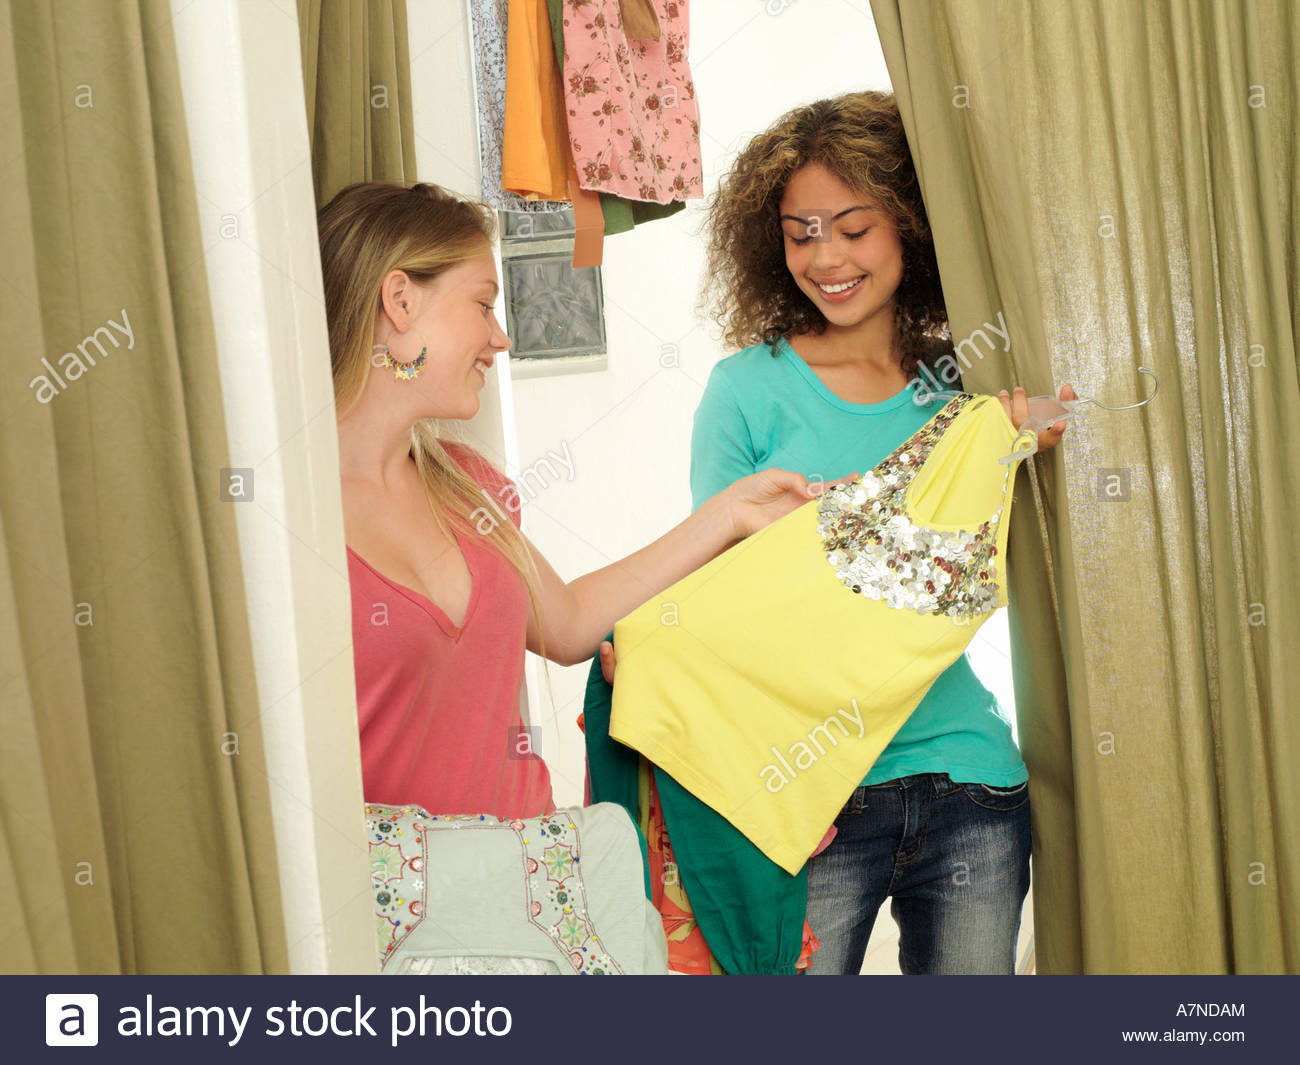 Girls In Fitting Room